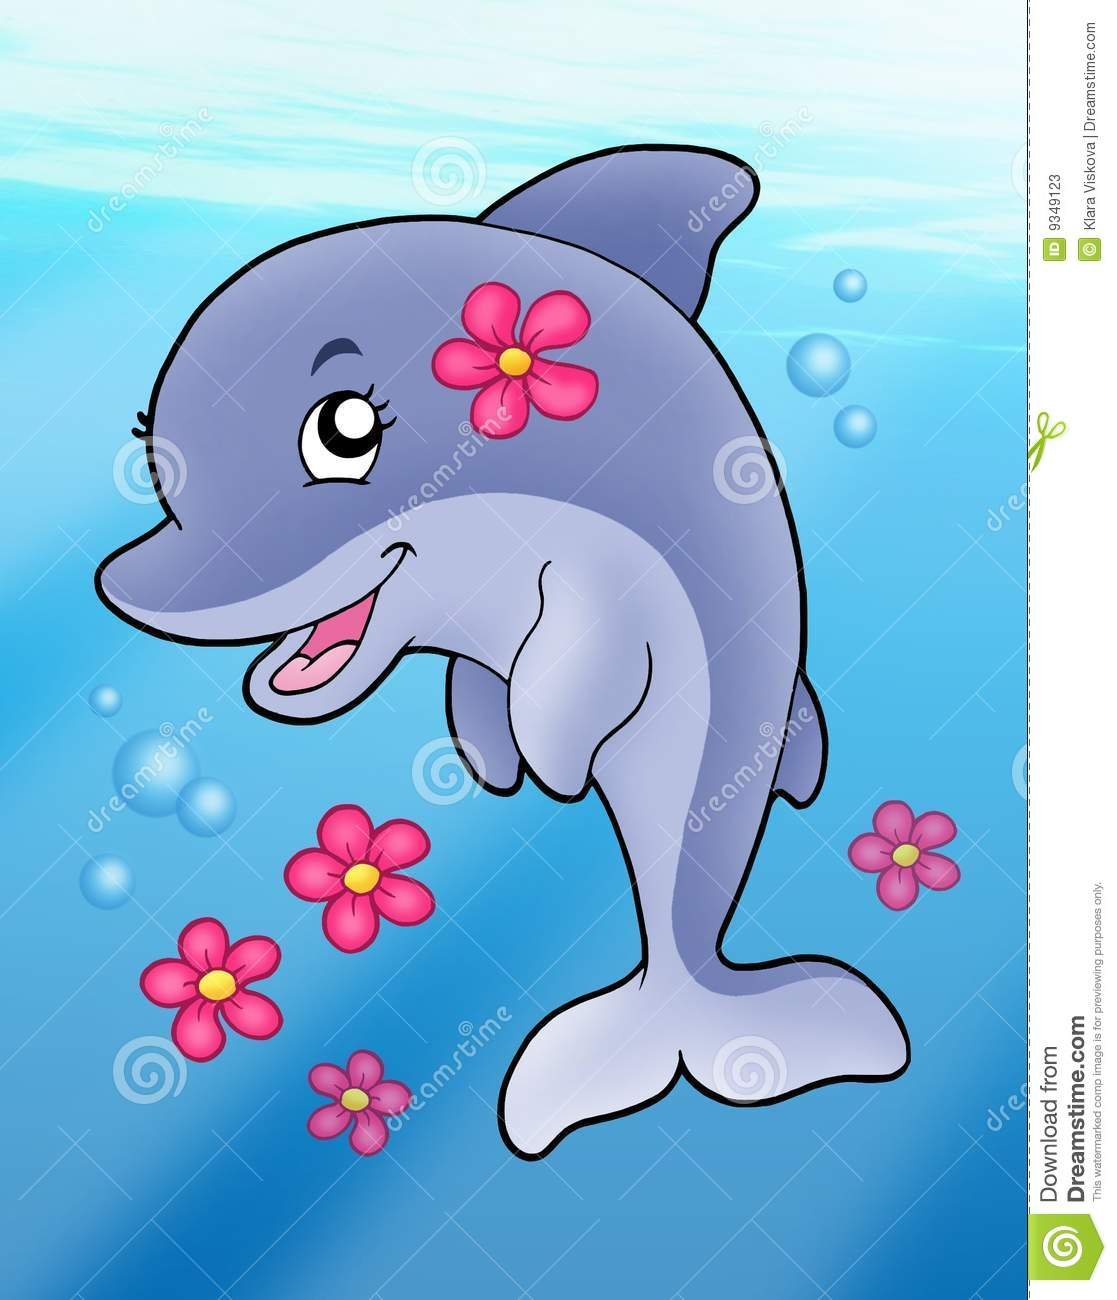 Cute baby dolphins drawings – cfxq